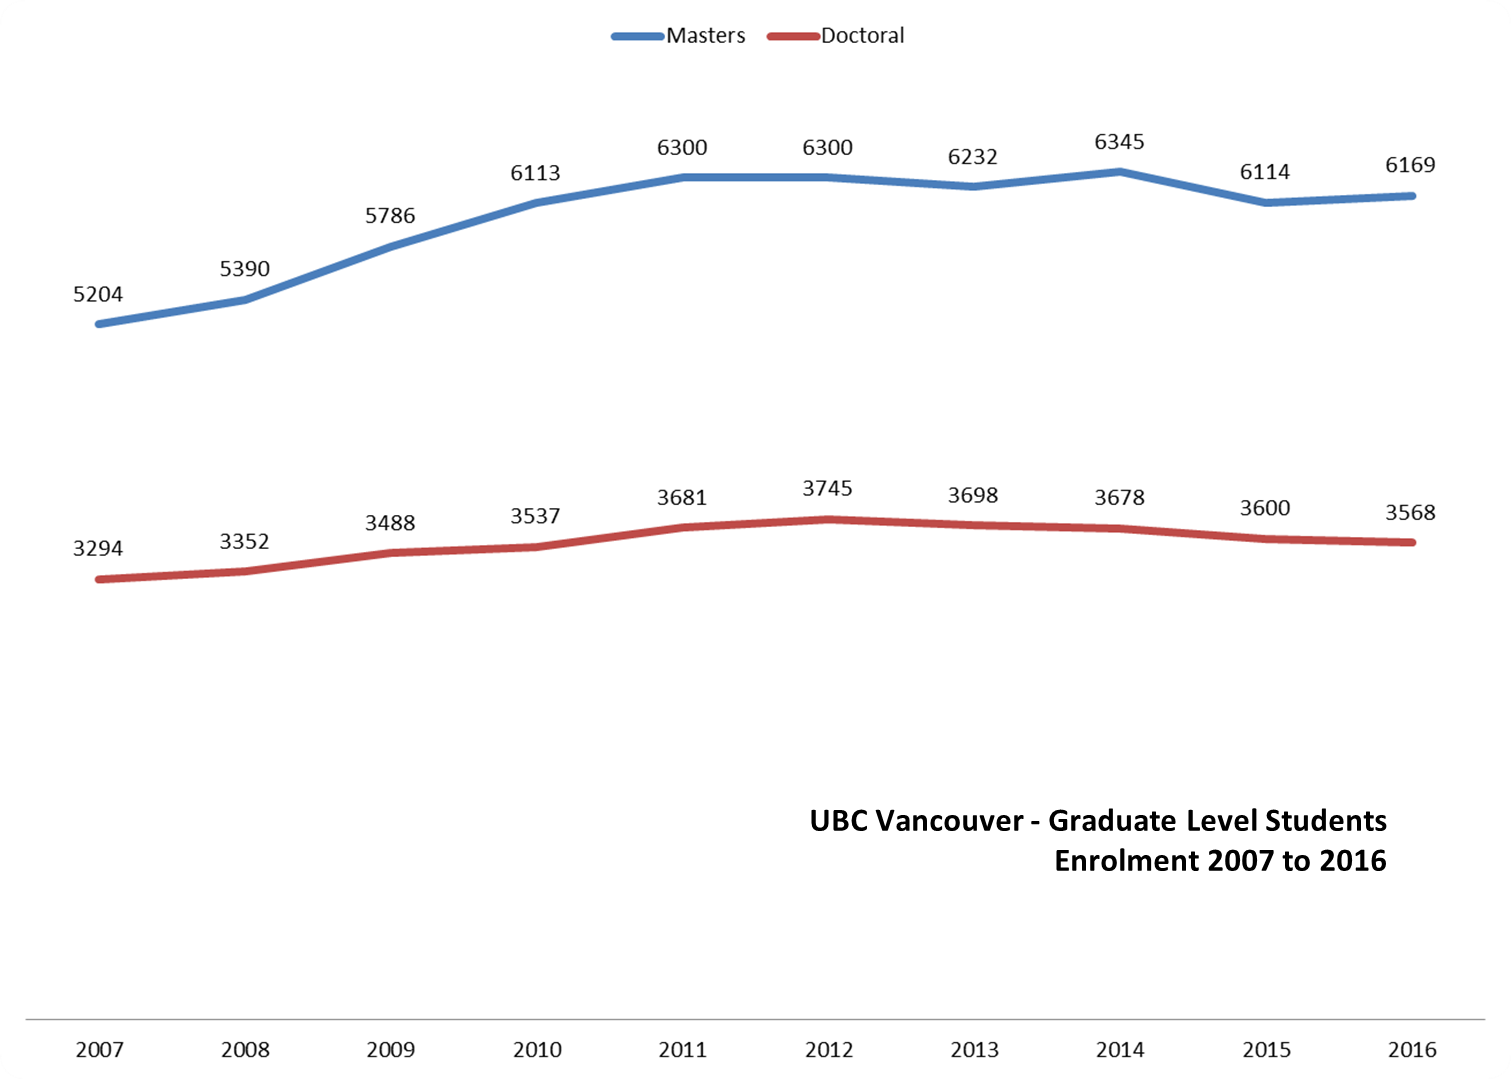 Graph showing the enrolment of graduate level students between 2007 and 2016